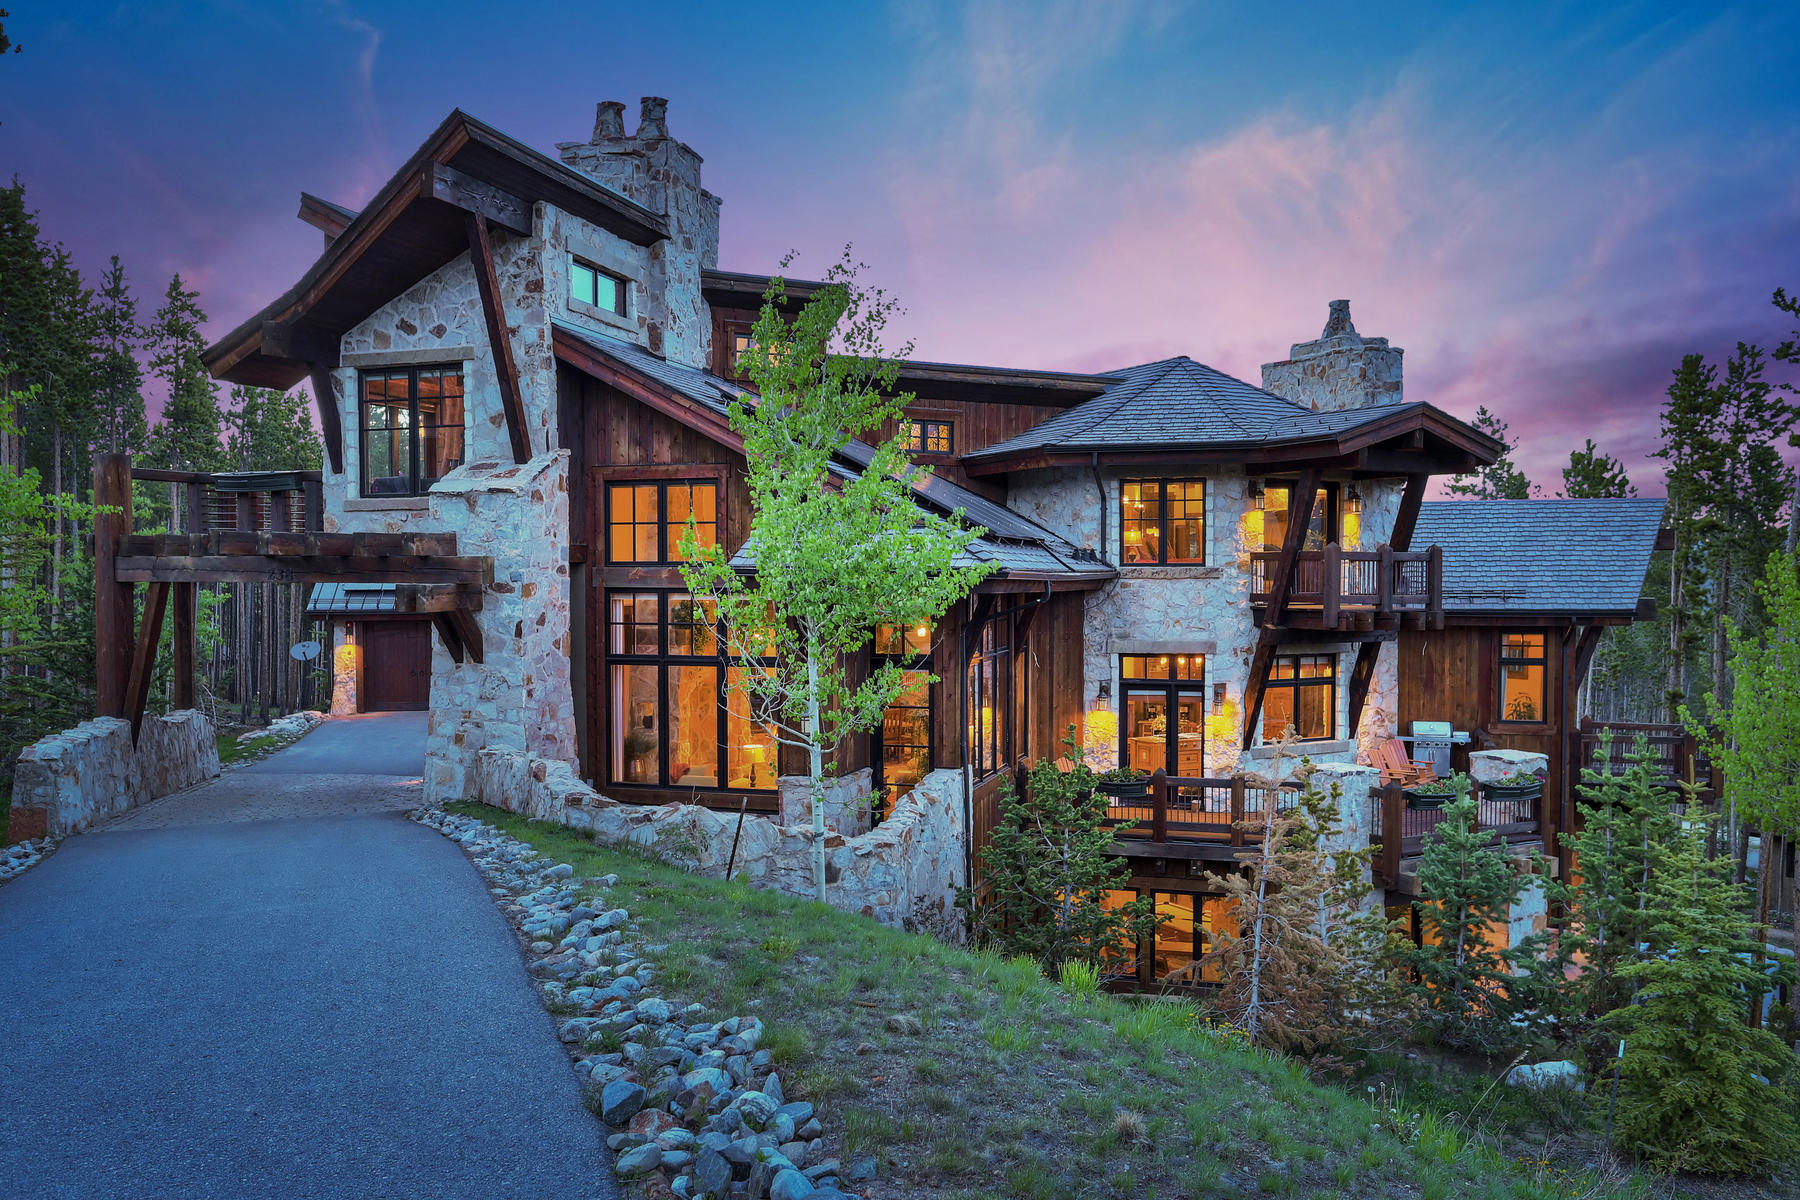 Single Family Homes for Sale at European Inspired Masterpiece 238 Timber Trail Rd Breckenridge, Colorado 80424 United States